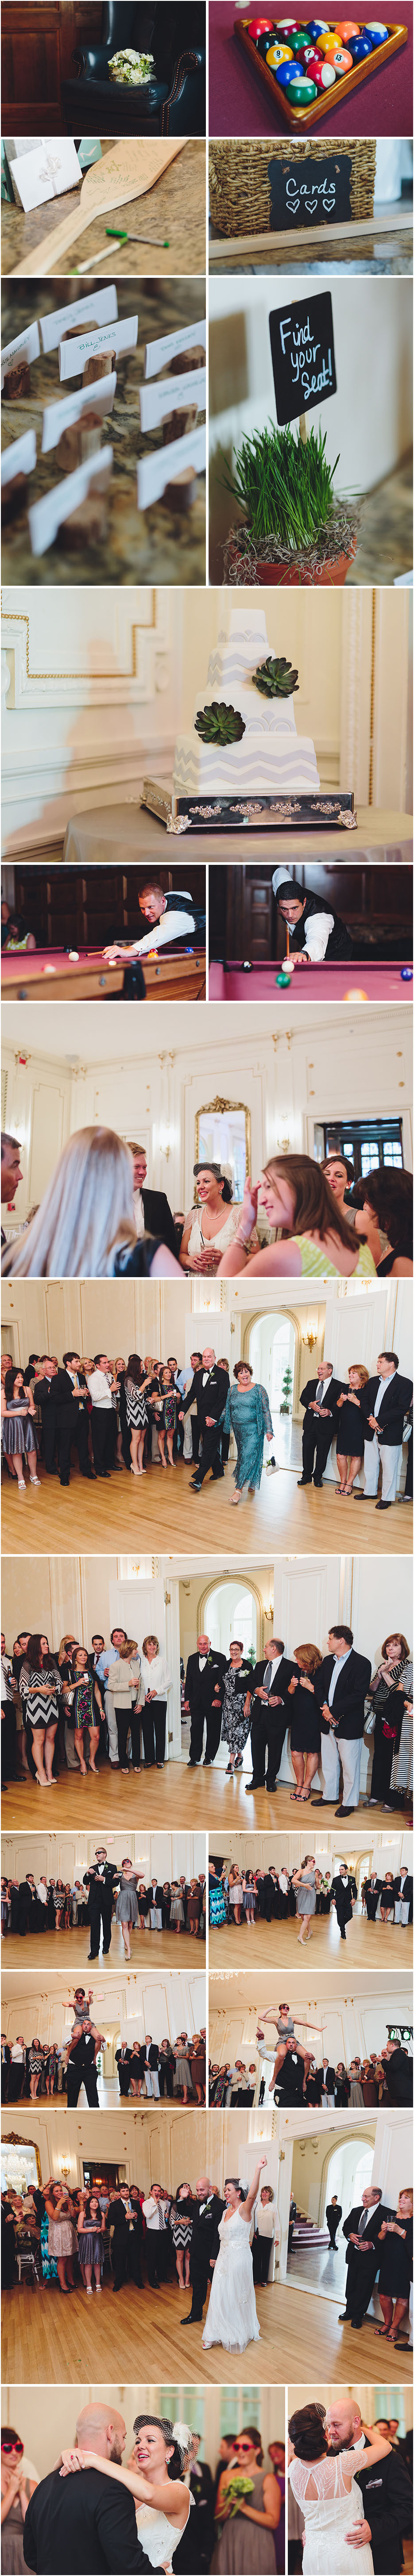 TUPPER MANOR WEDDINGS